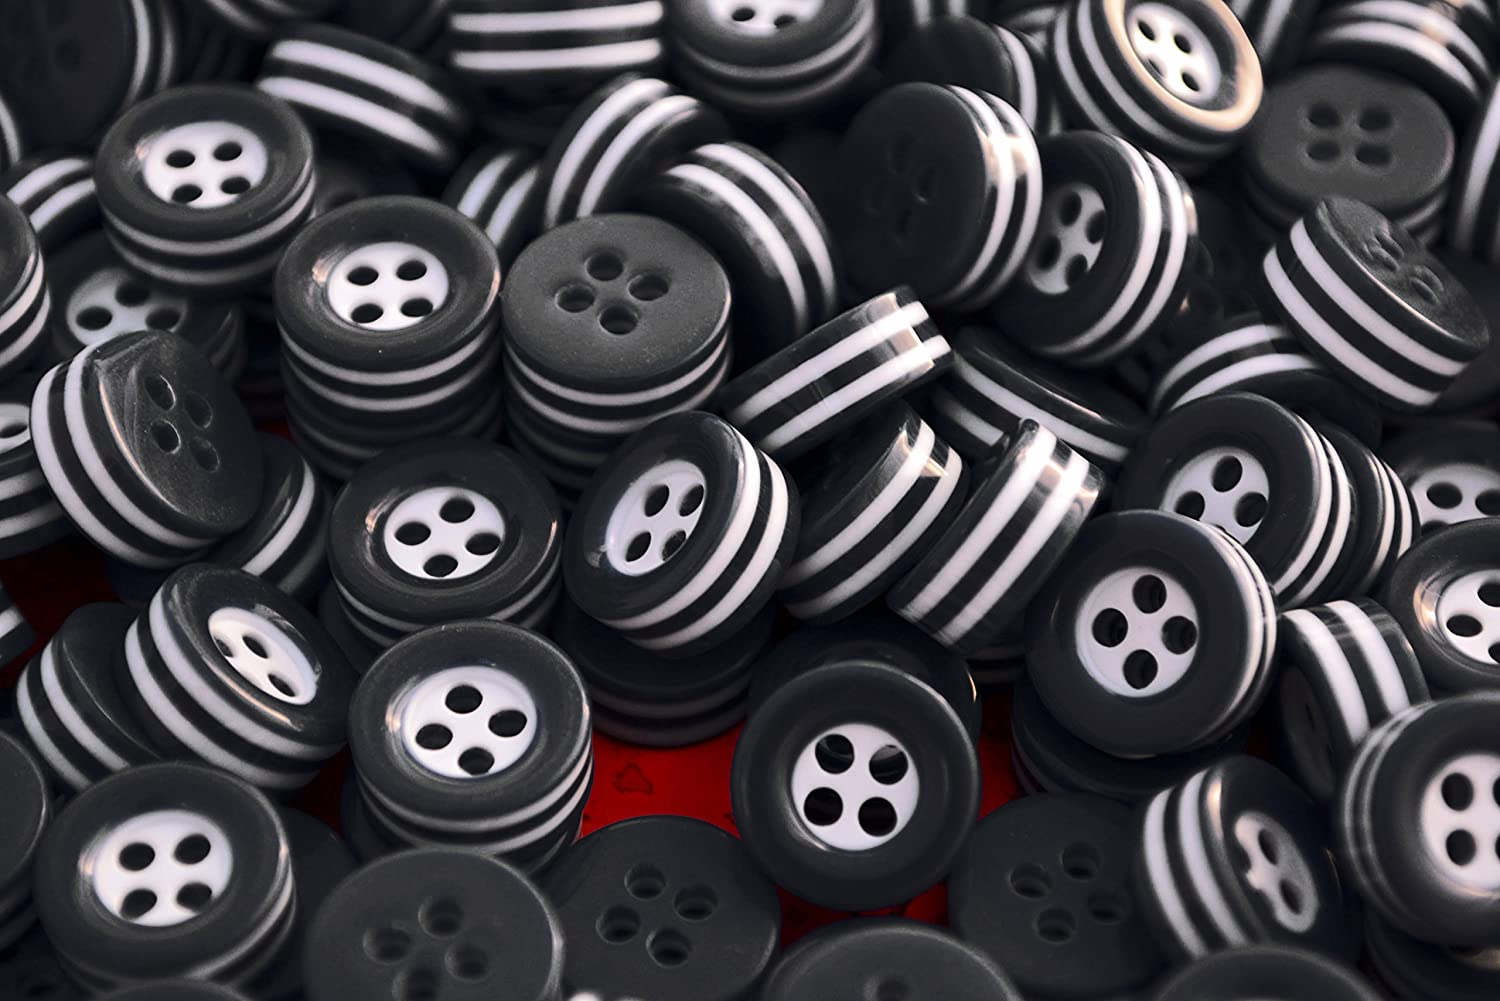 20 white and black STRIPED BUTTONS - 5mm thick! - choose from sizes 18L 16L 14L - great quality - Made in ITALY (18L 5mm thick)